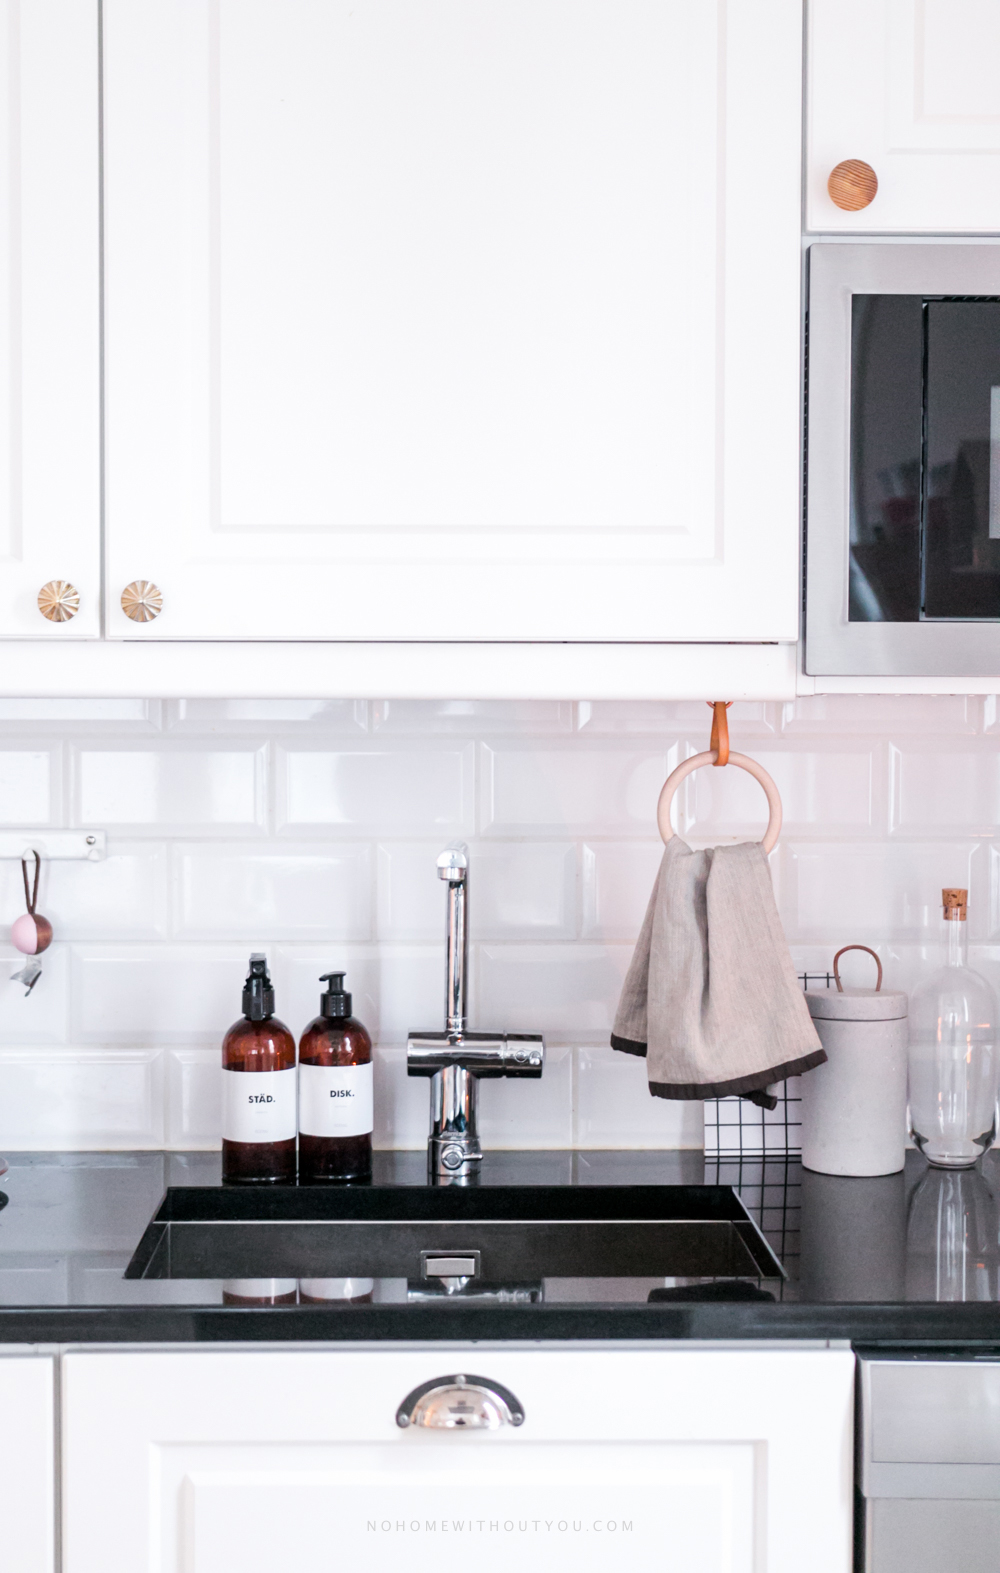 DIY-kitchen-towel-hanger-No-Home-Without-You-blog-3-of-3